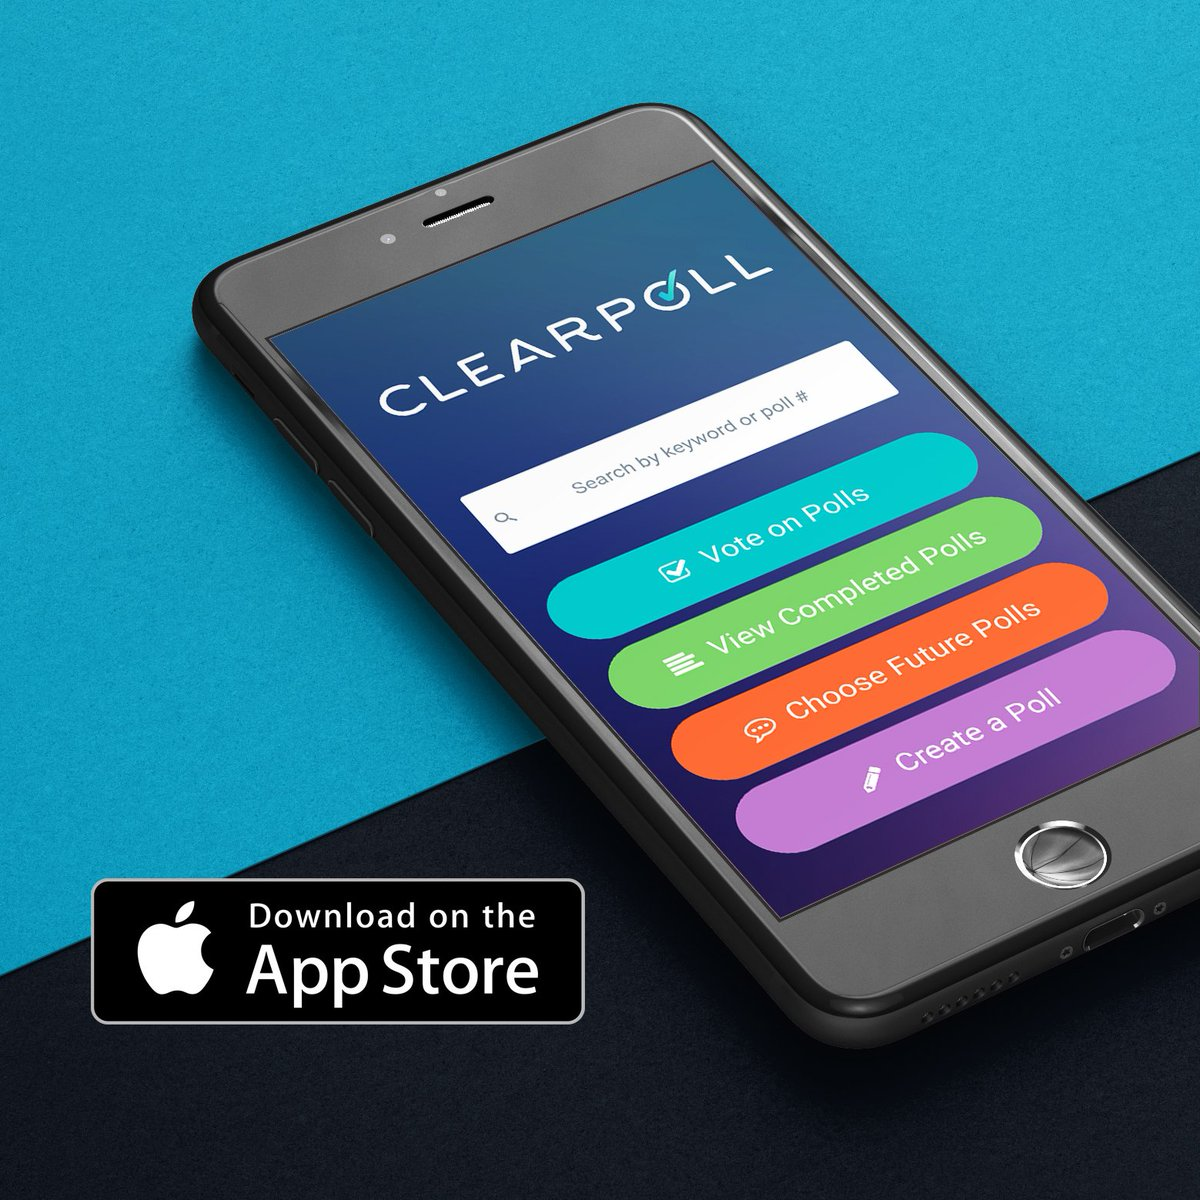 ClearPoll com on Twitter: